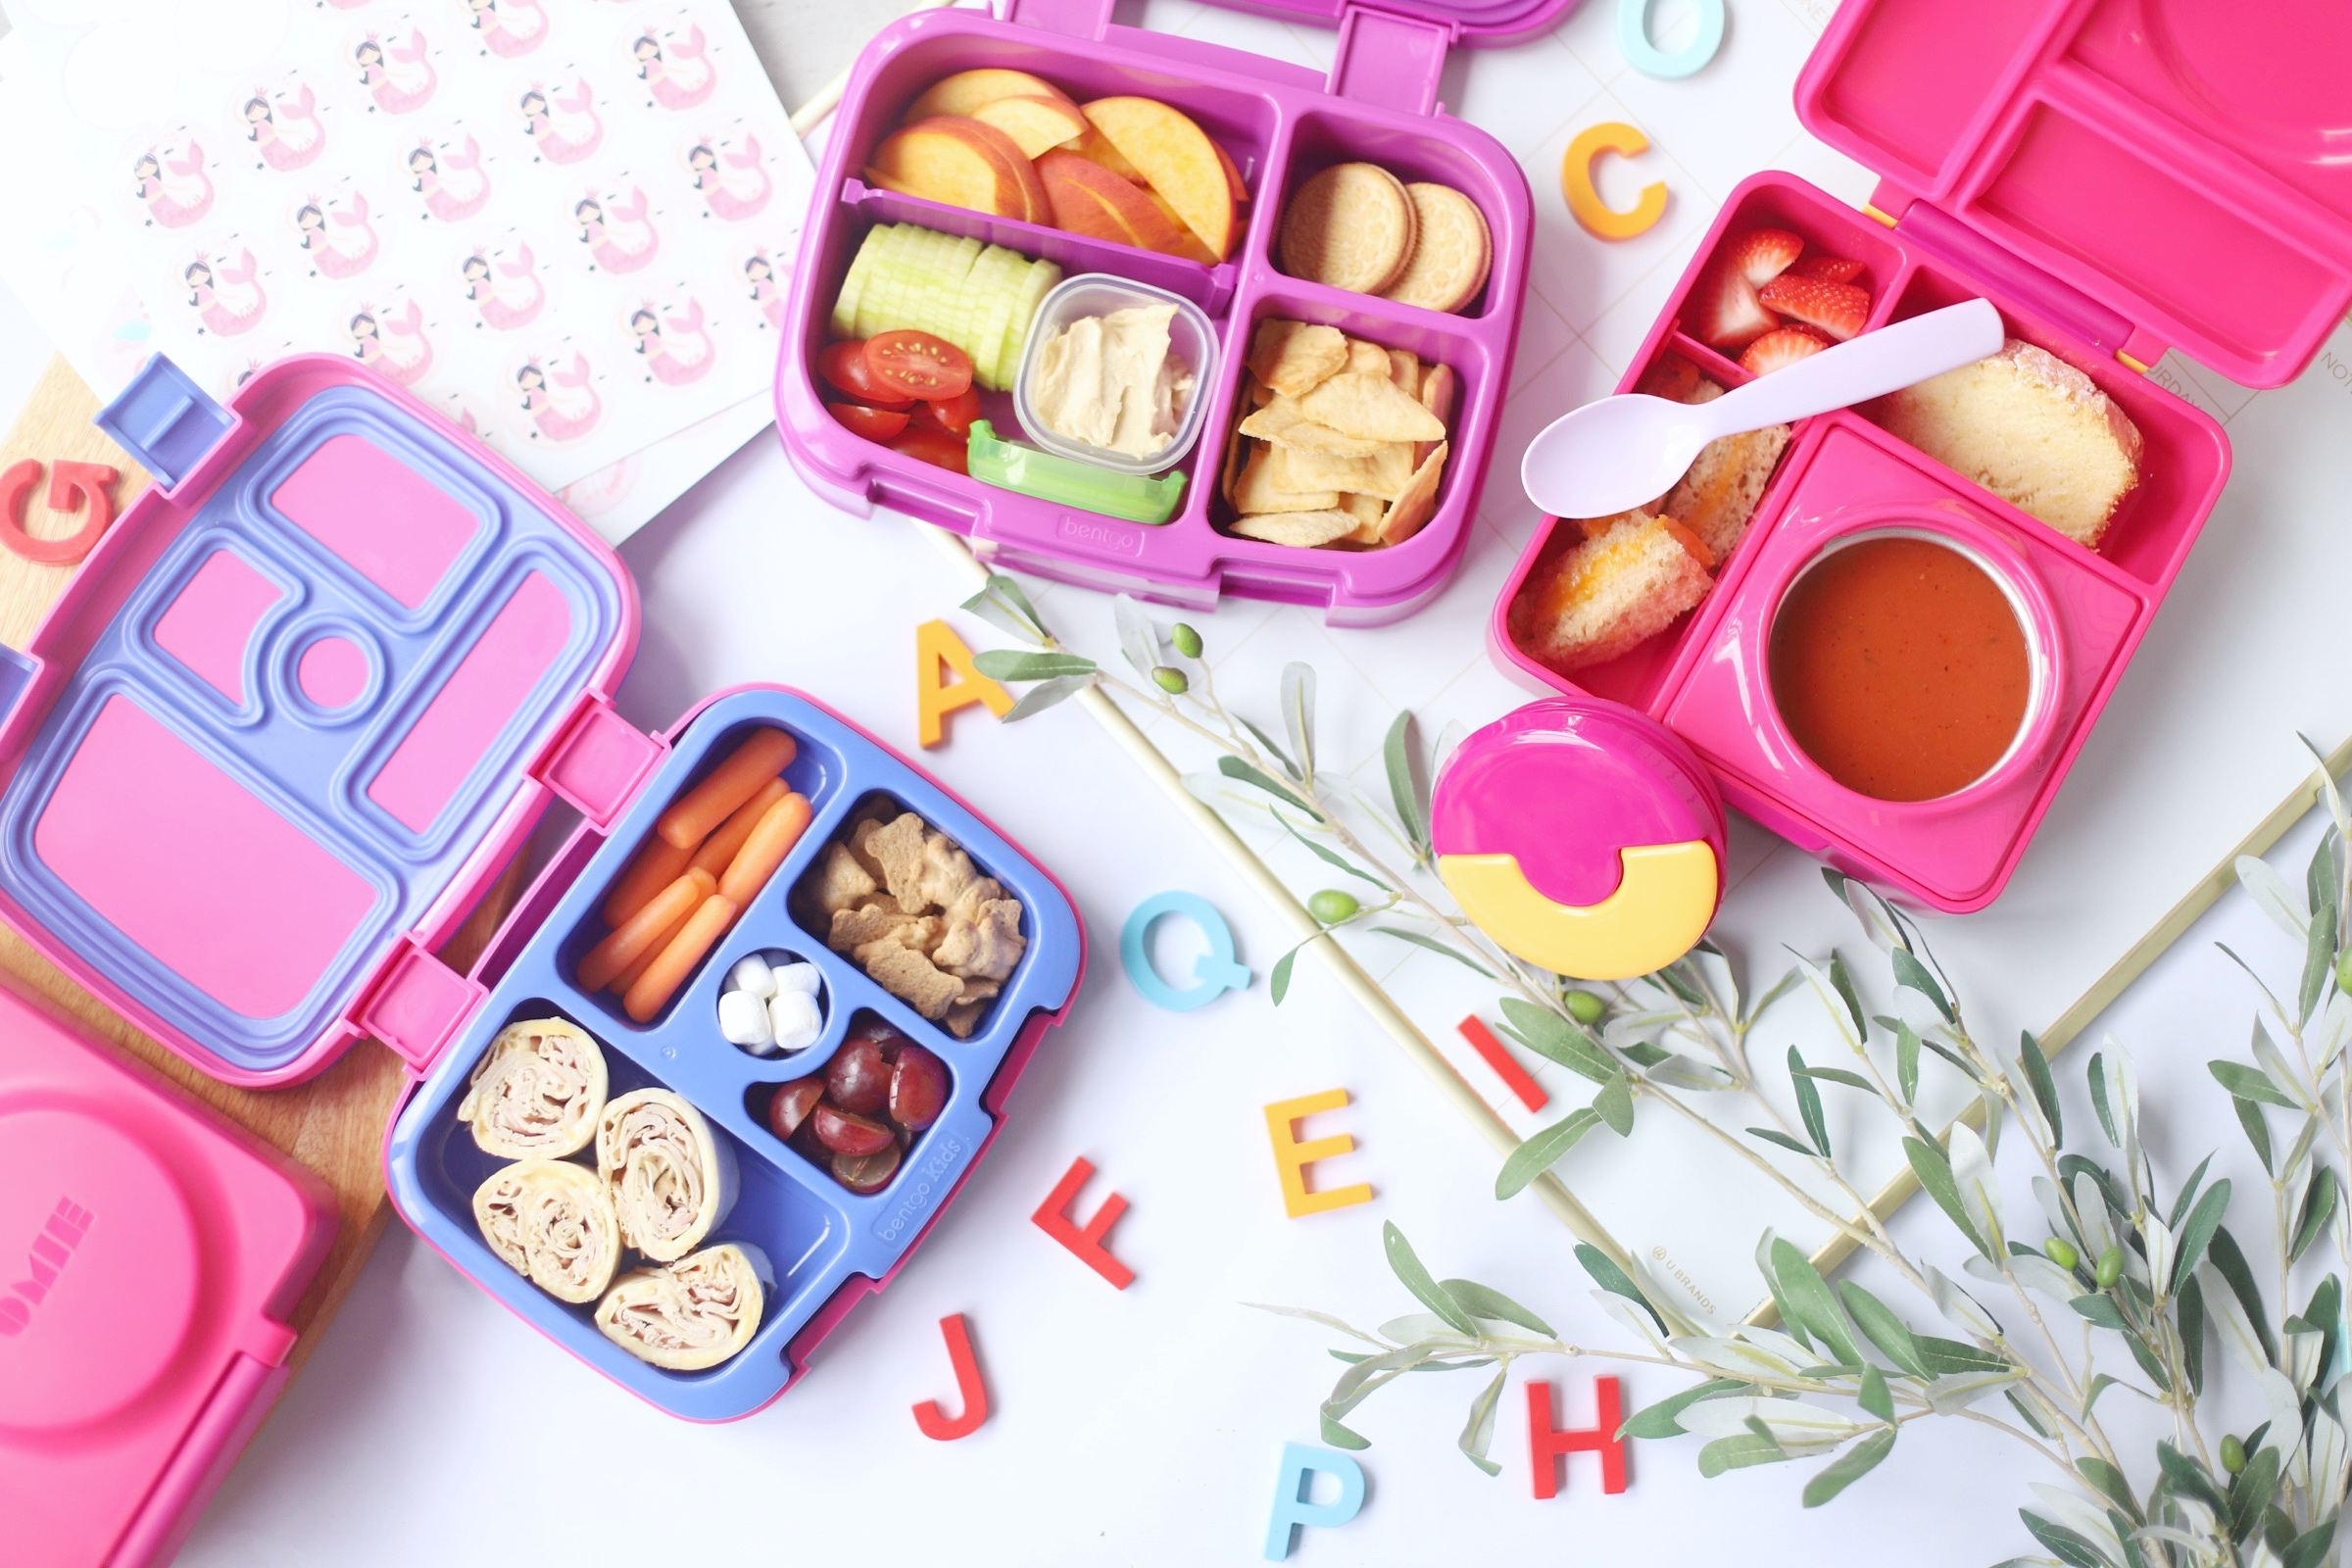 put hand pies in a bento box that is pink and blue